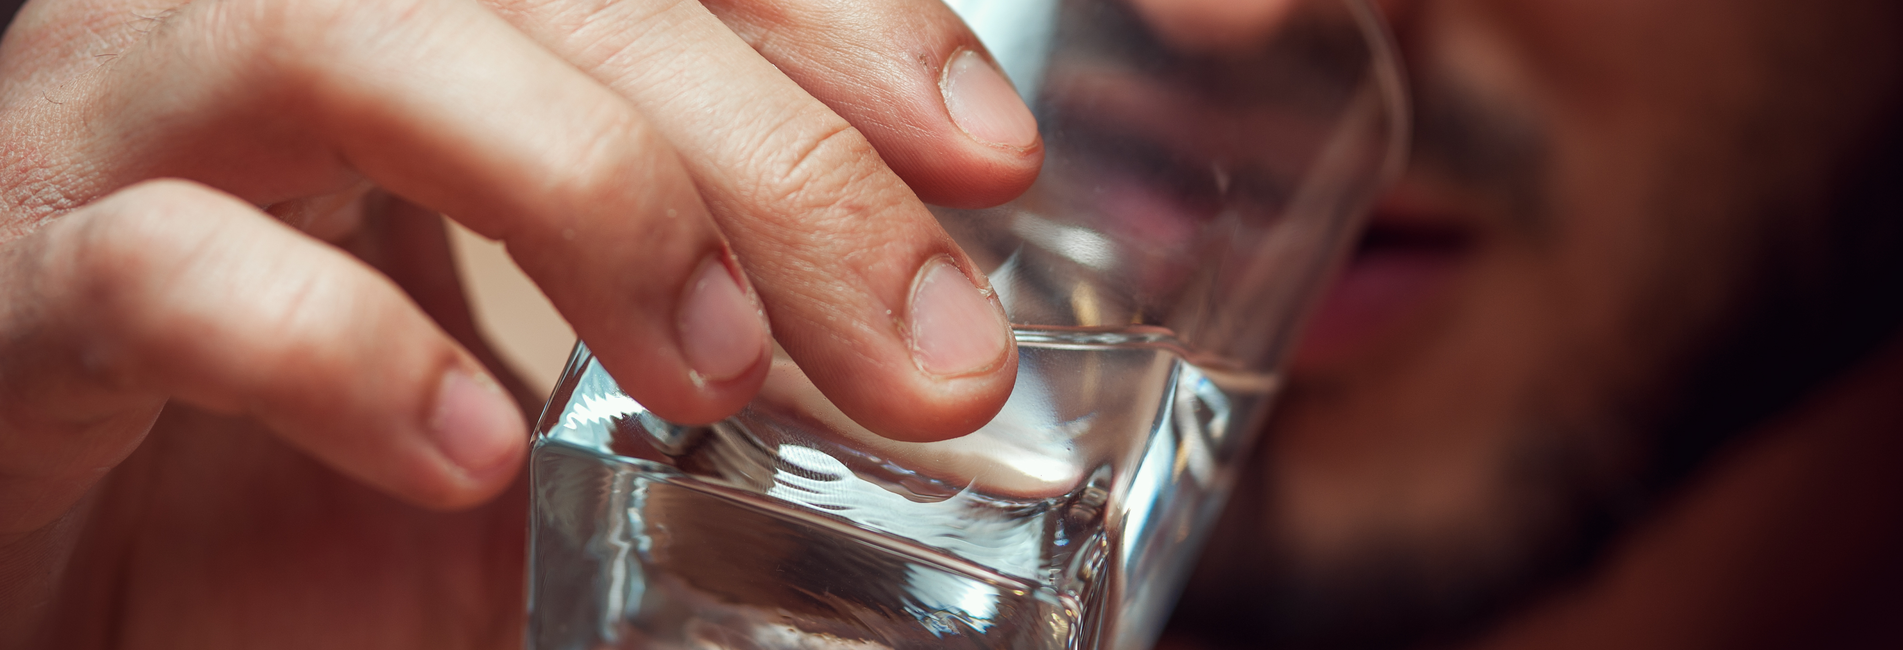 Alcohol Treatment in California - Get Addiction Help Now - Resurgence - A man chugs a glass of hard liquor as he contemplates getting alcohol treatment in California.